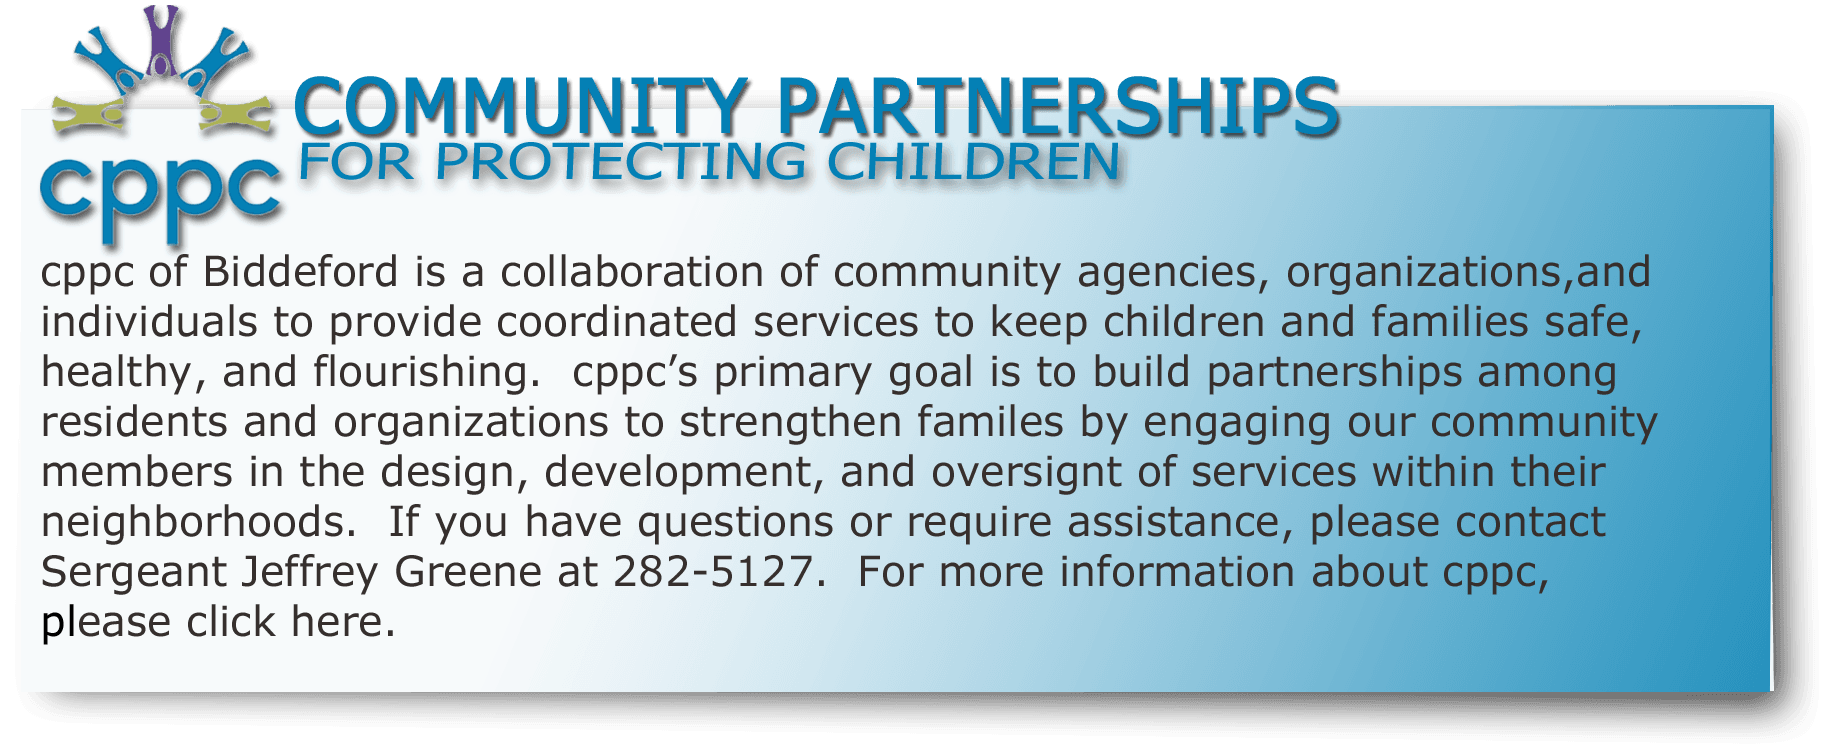 Community Partnerships for Protecting Children (CPPC)